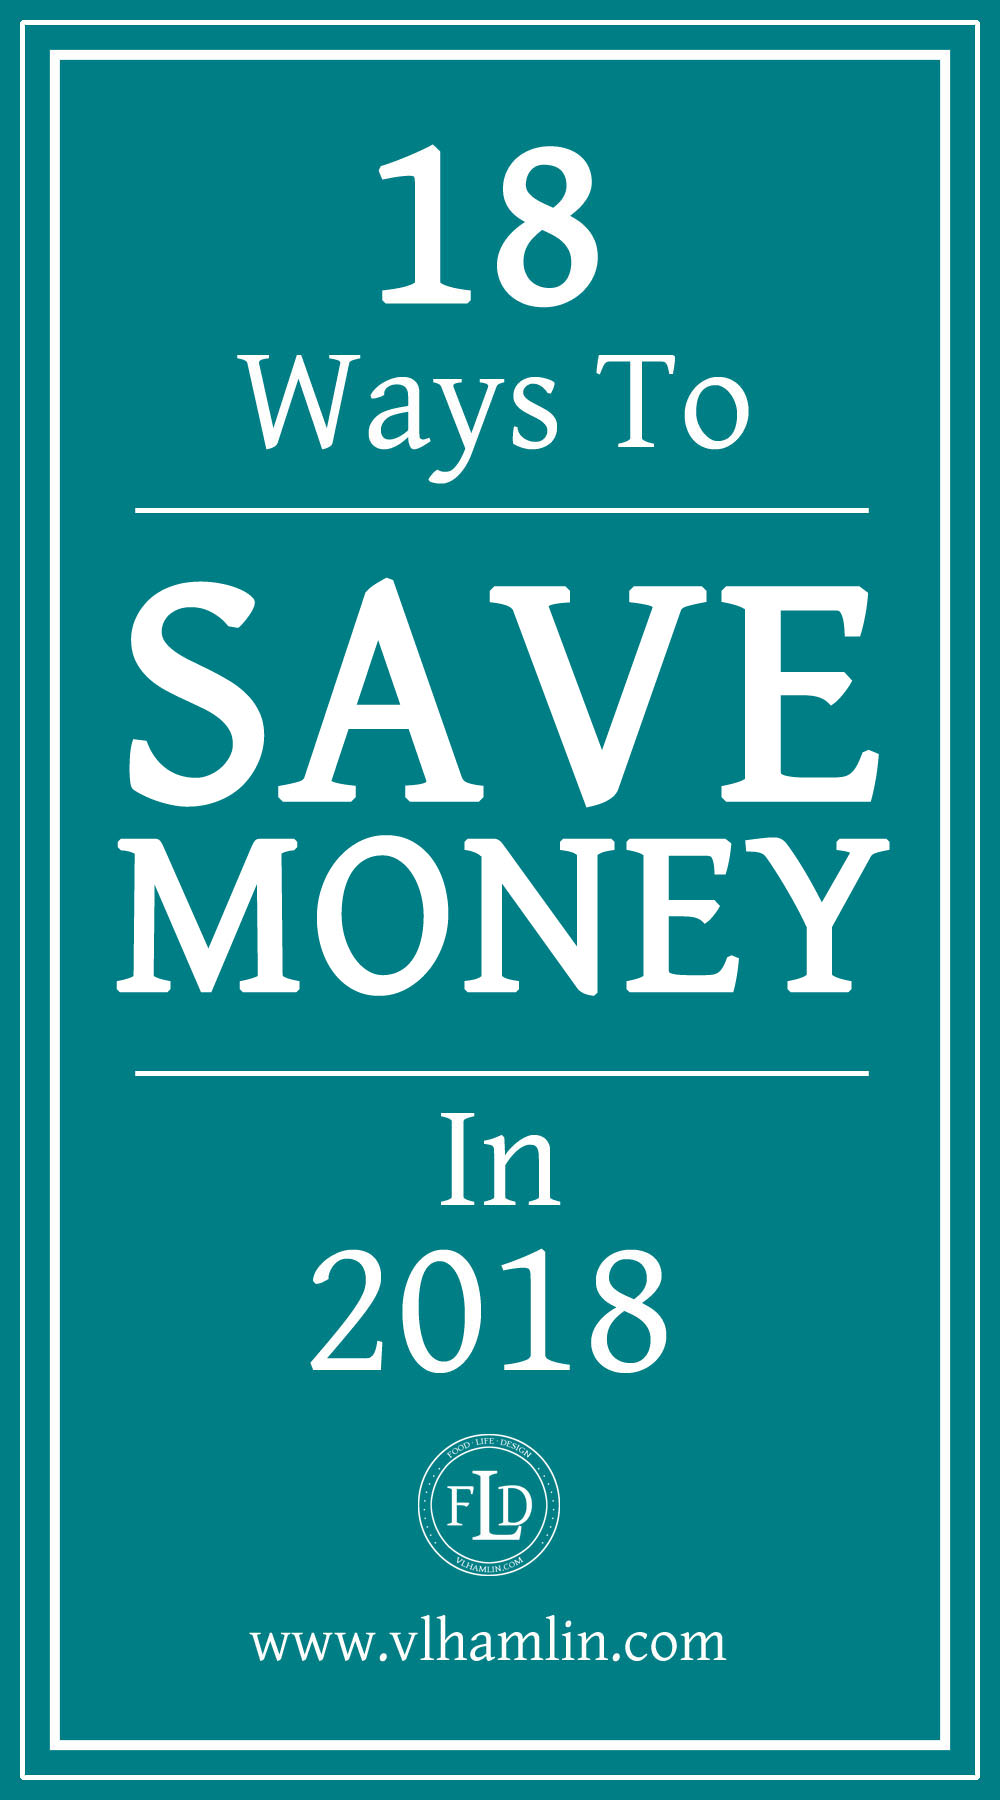 18 Ways to Save Money Online in 2018